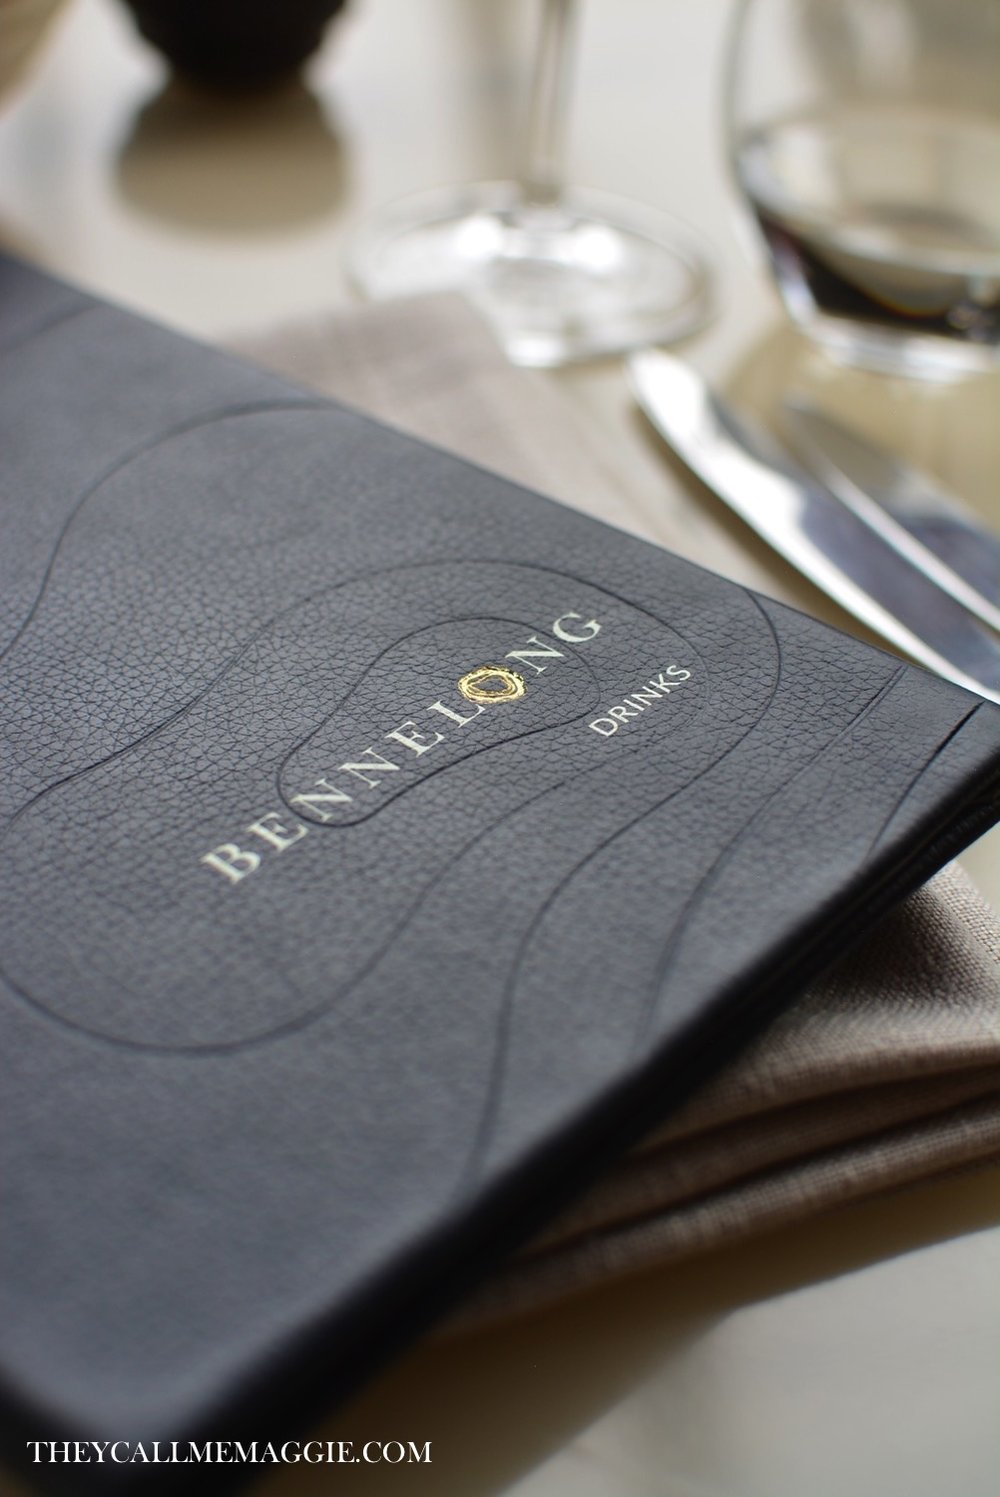 bennelong-drinks-menu.jpg